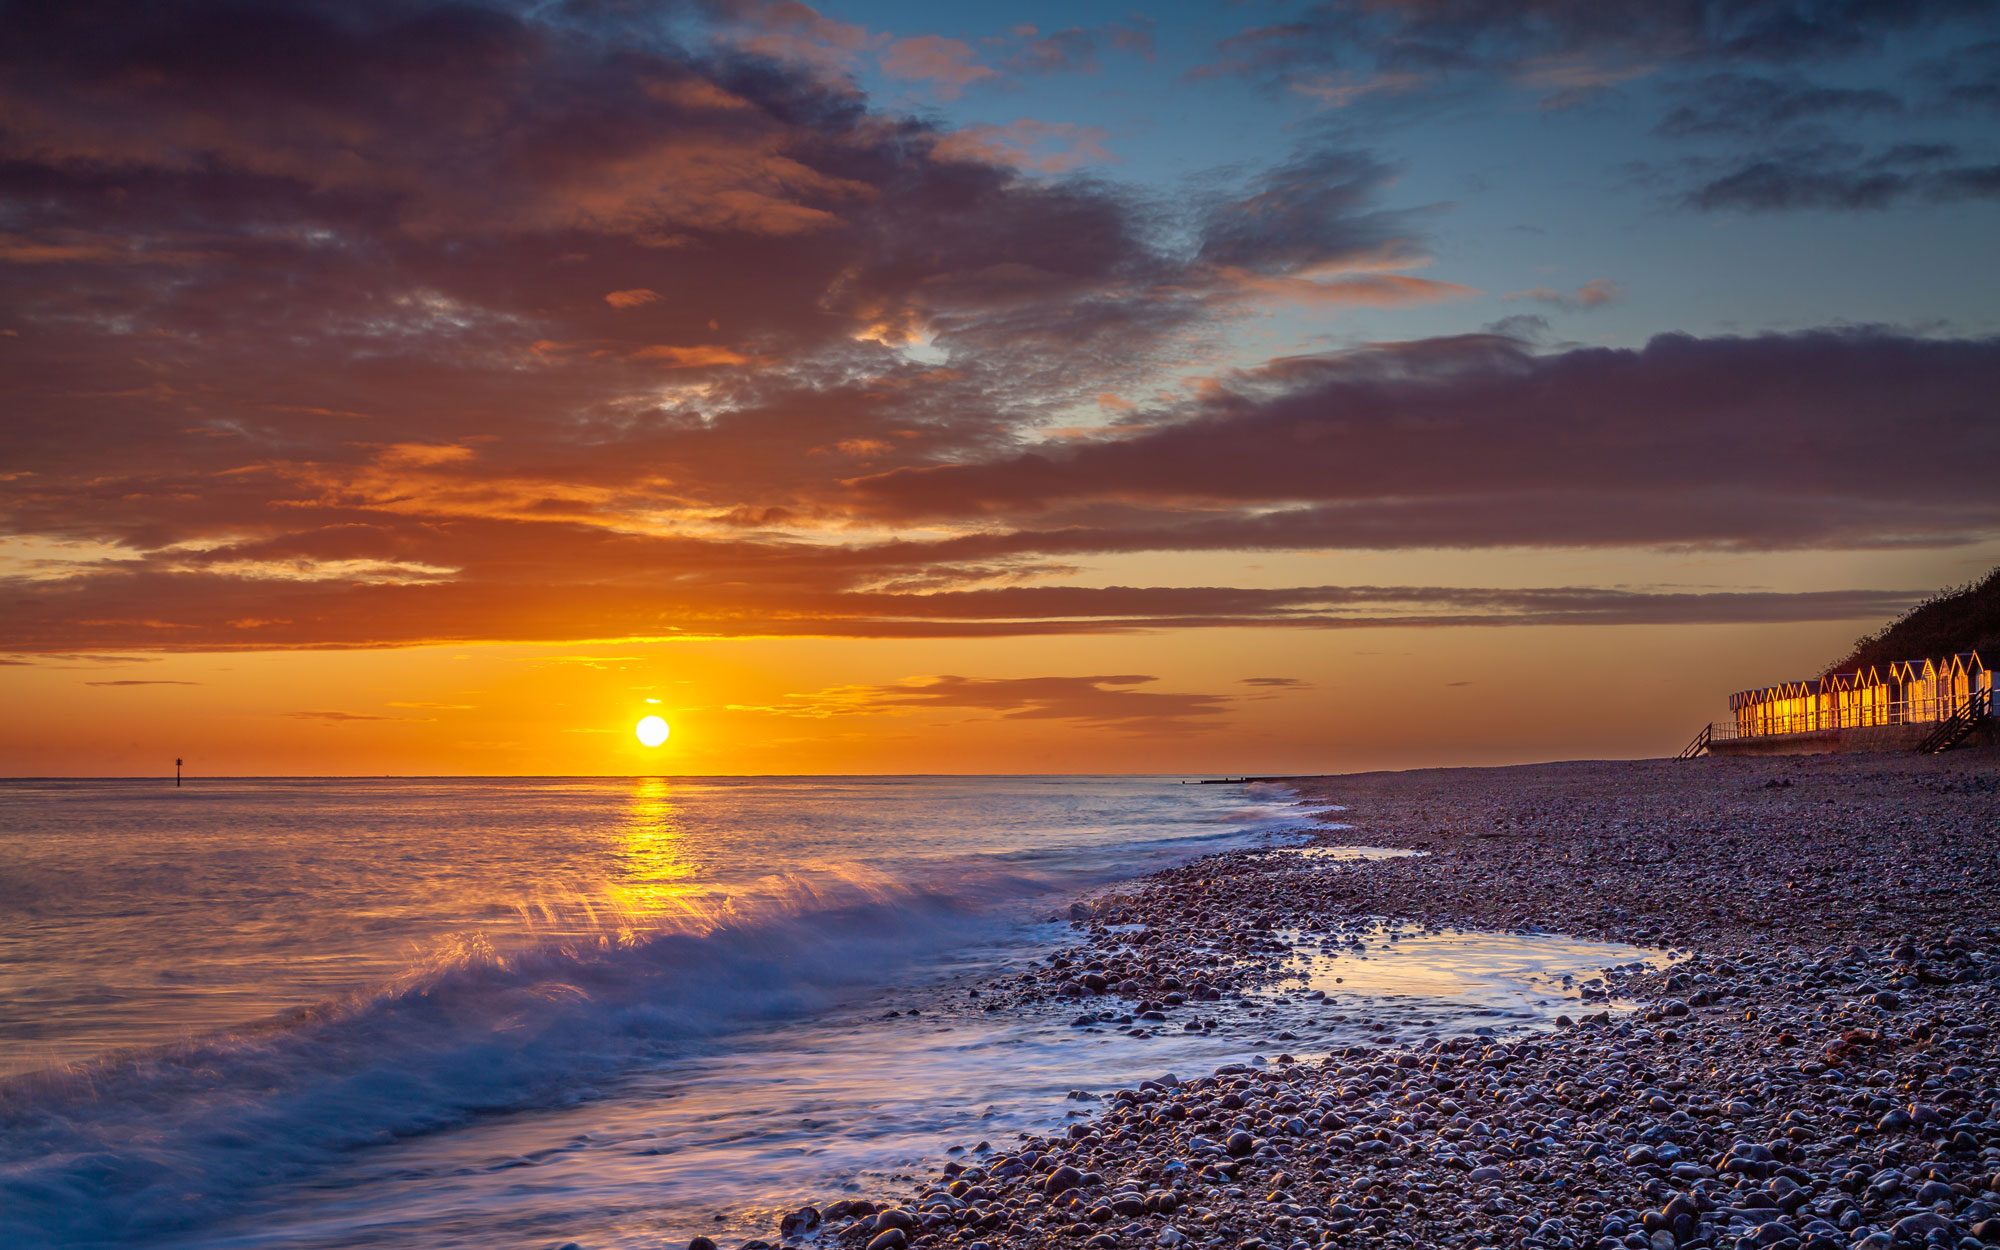 Sunrise against the sea at Cromer Beach, Norfolk, UK n